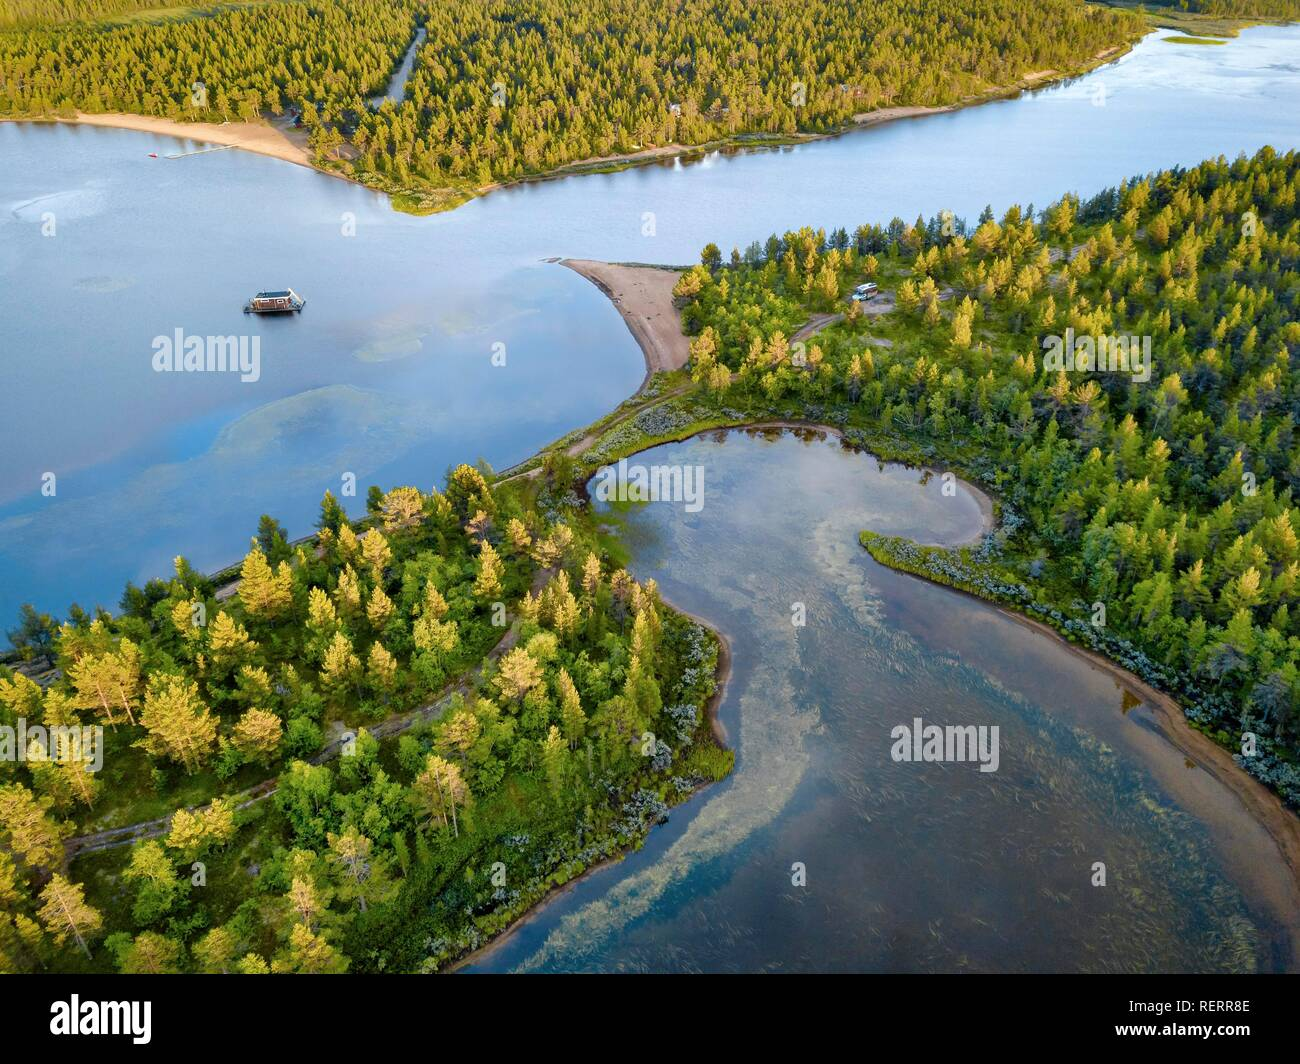 Drone view, aerial photo of floating house in Vuontisjärvi, lake in boreal arctic forest with conifers - Stock Image